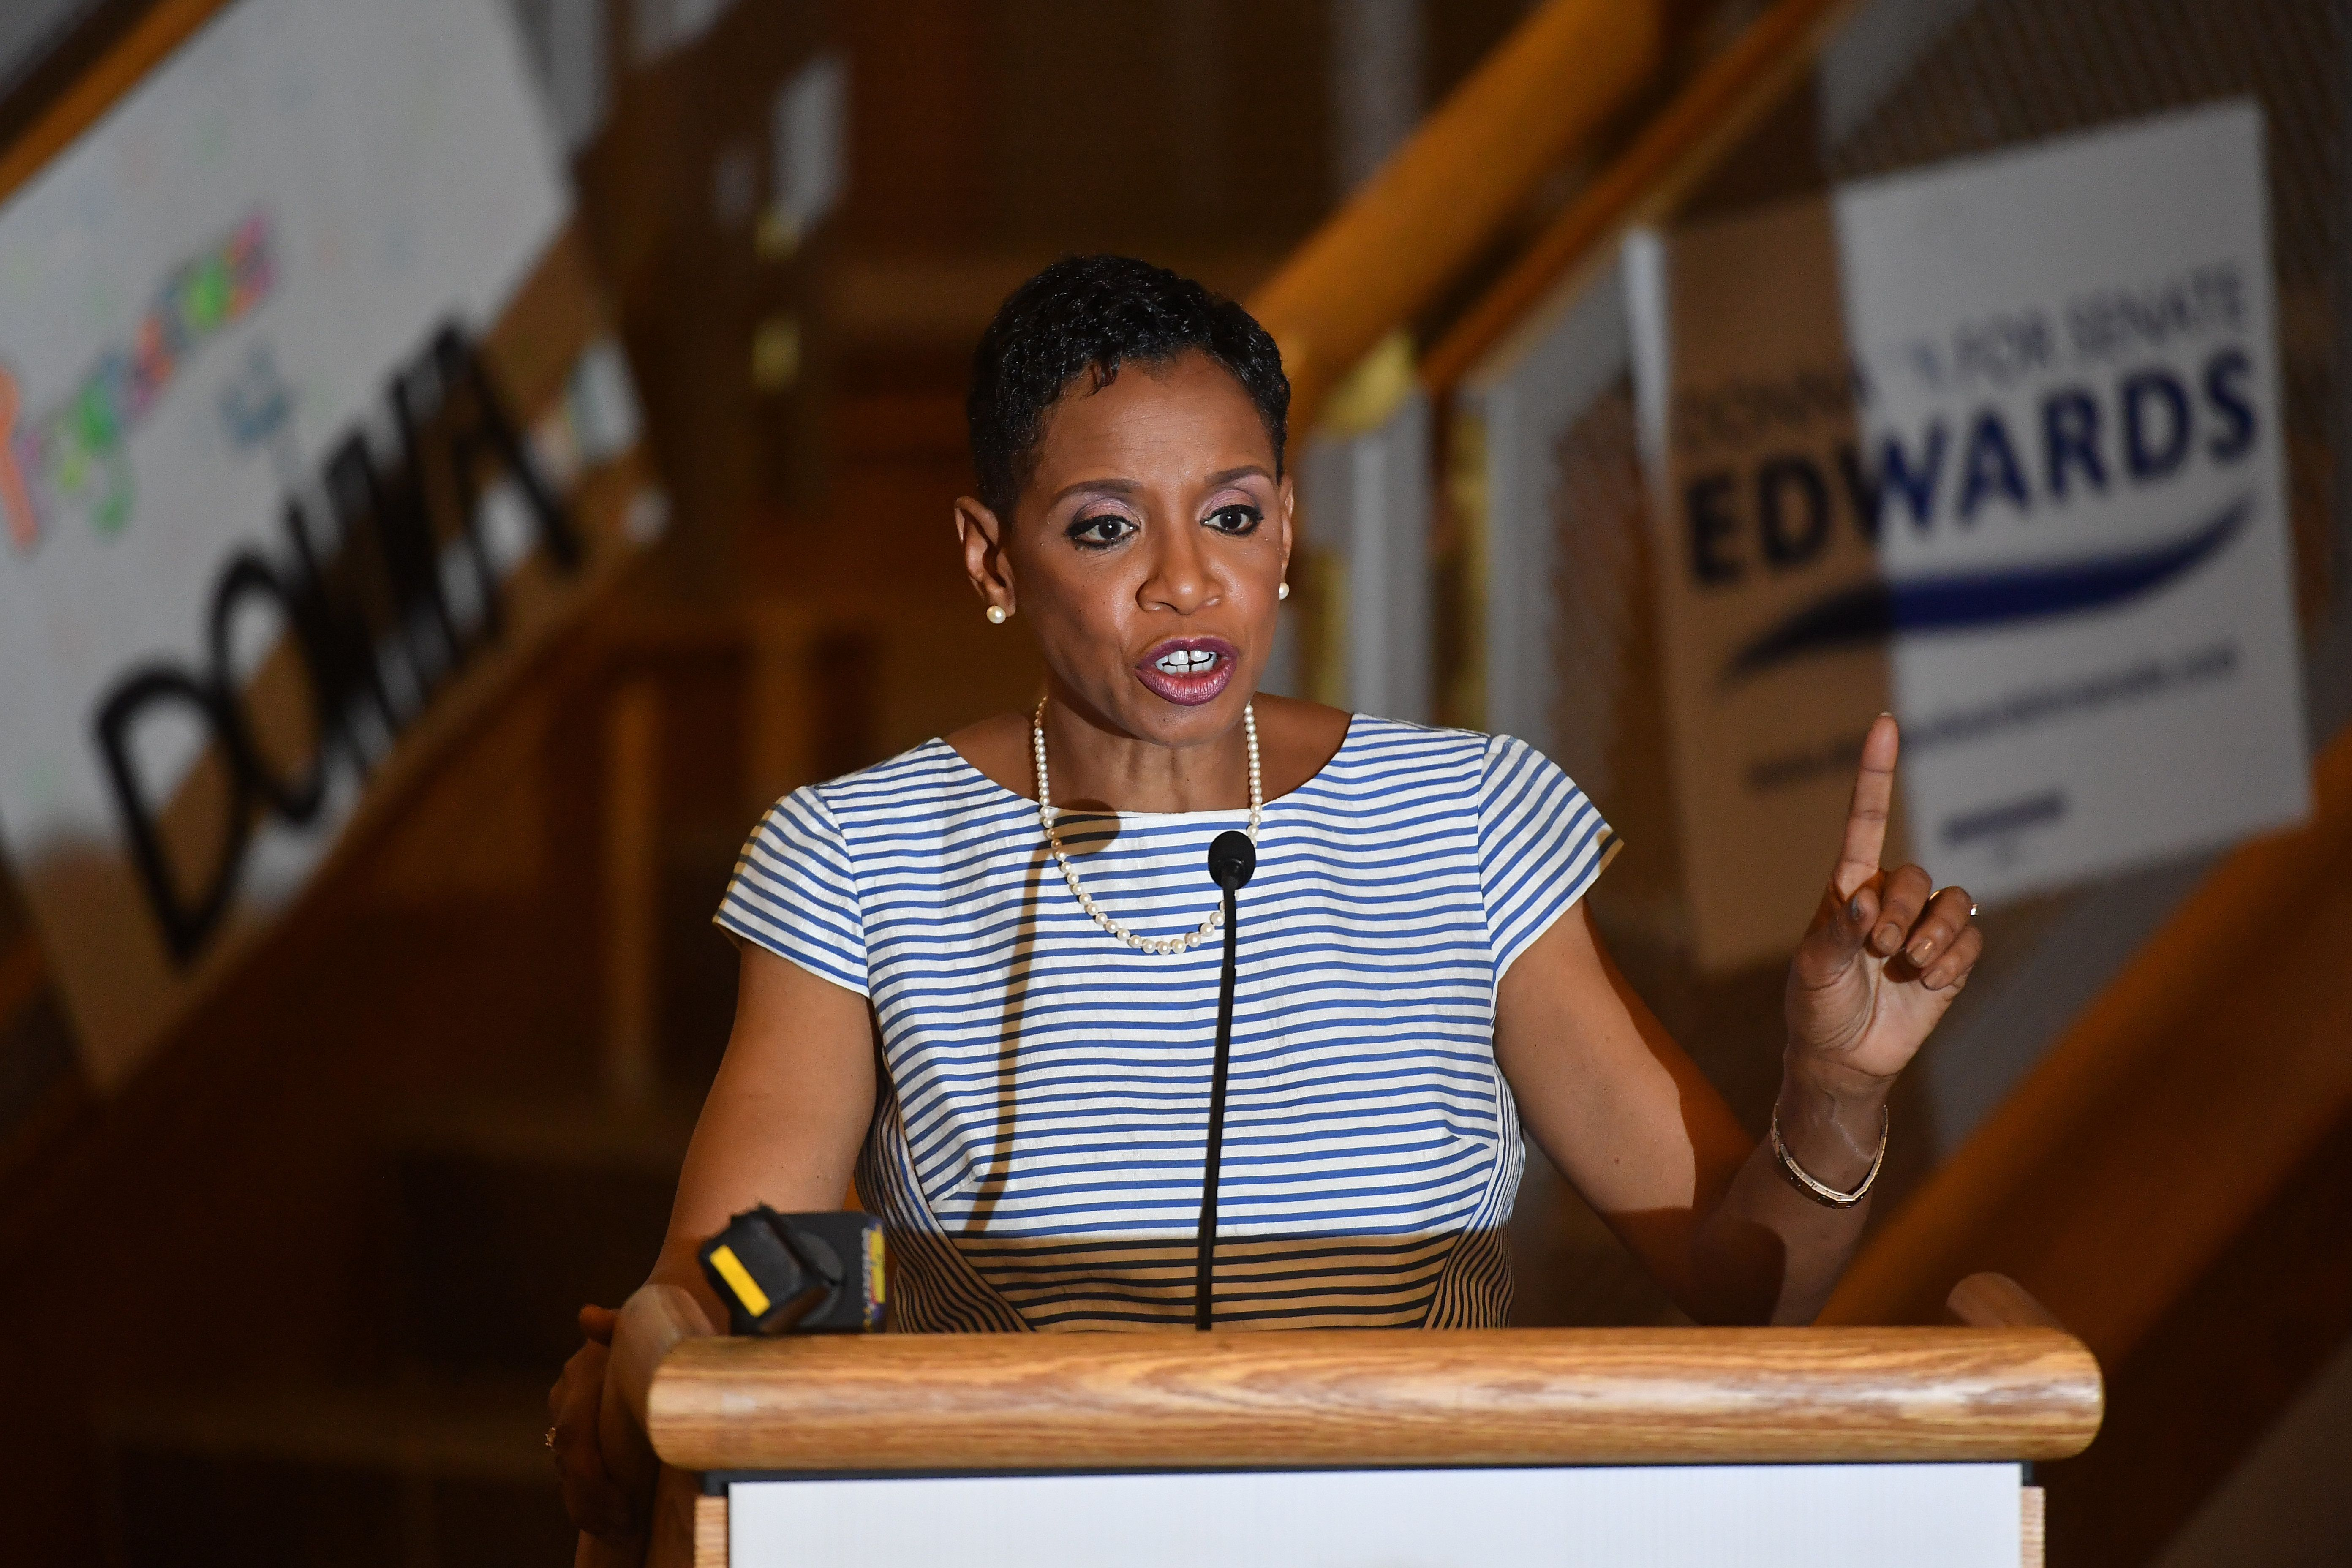 Maryland Democrat Donna Edwards left Congress in 2016 after a failed bid for the Democratic Senate nomination. On Saturday, s